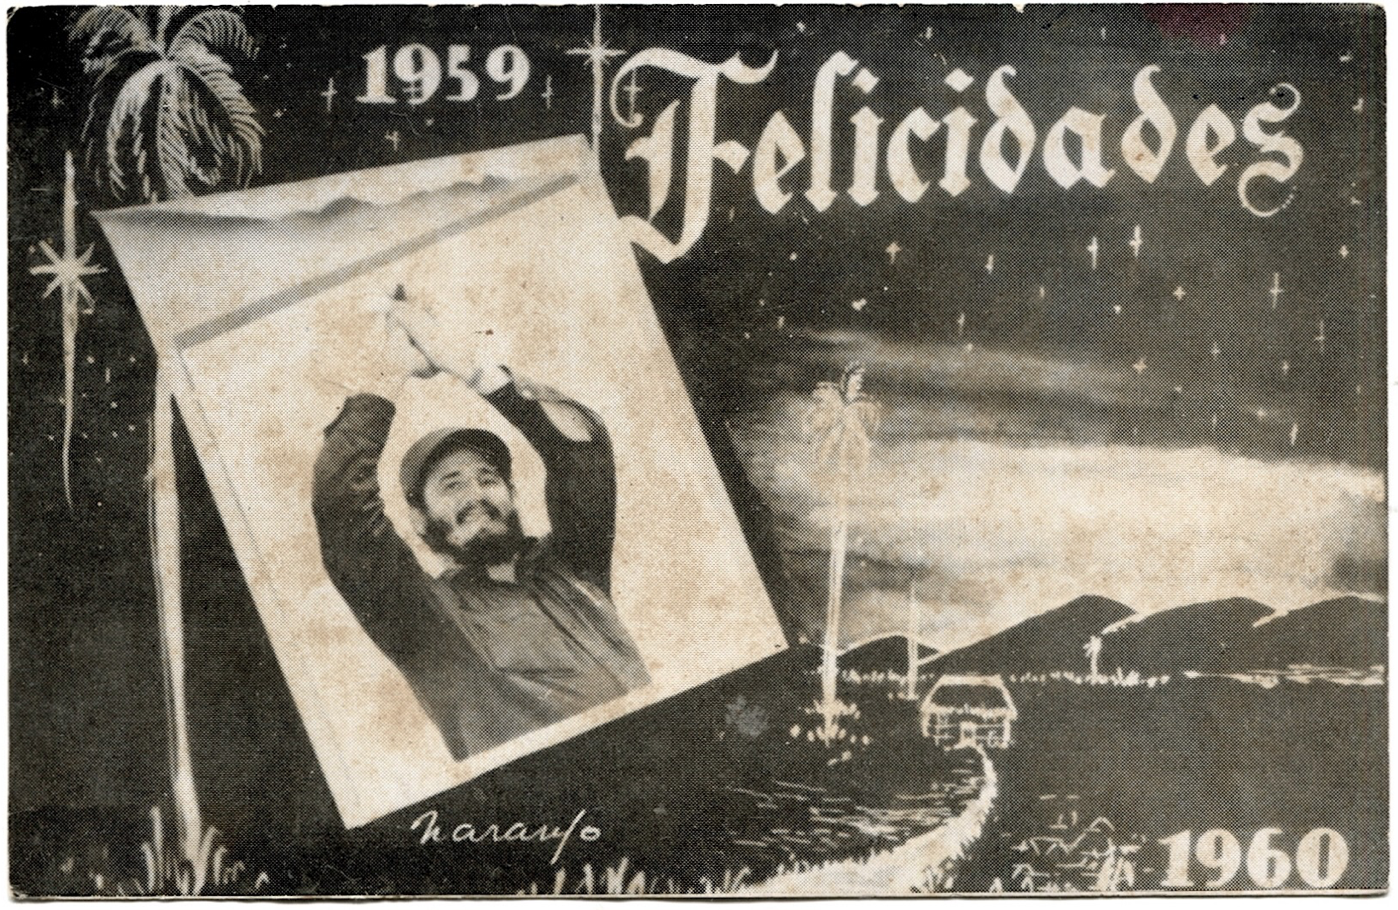 Christmas card with a picture of Fidel Castro.